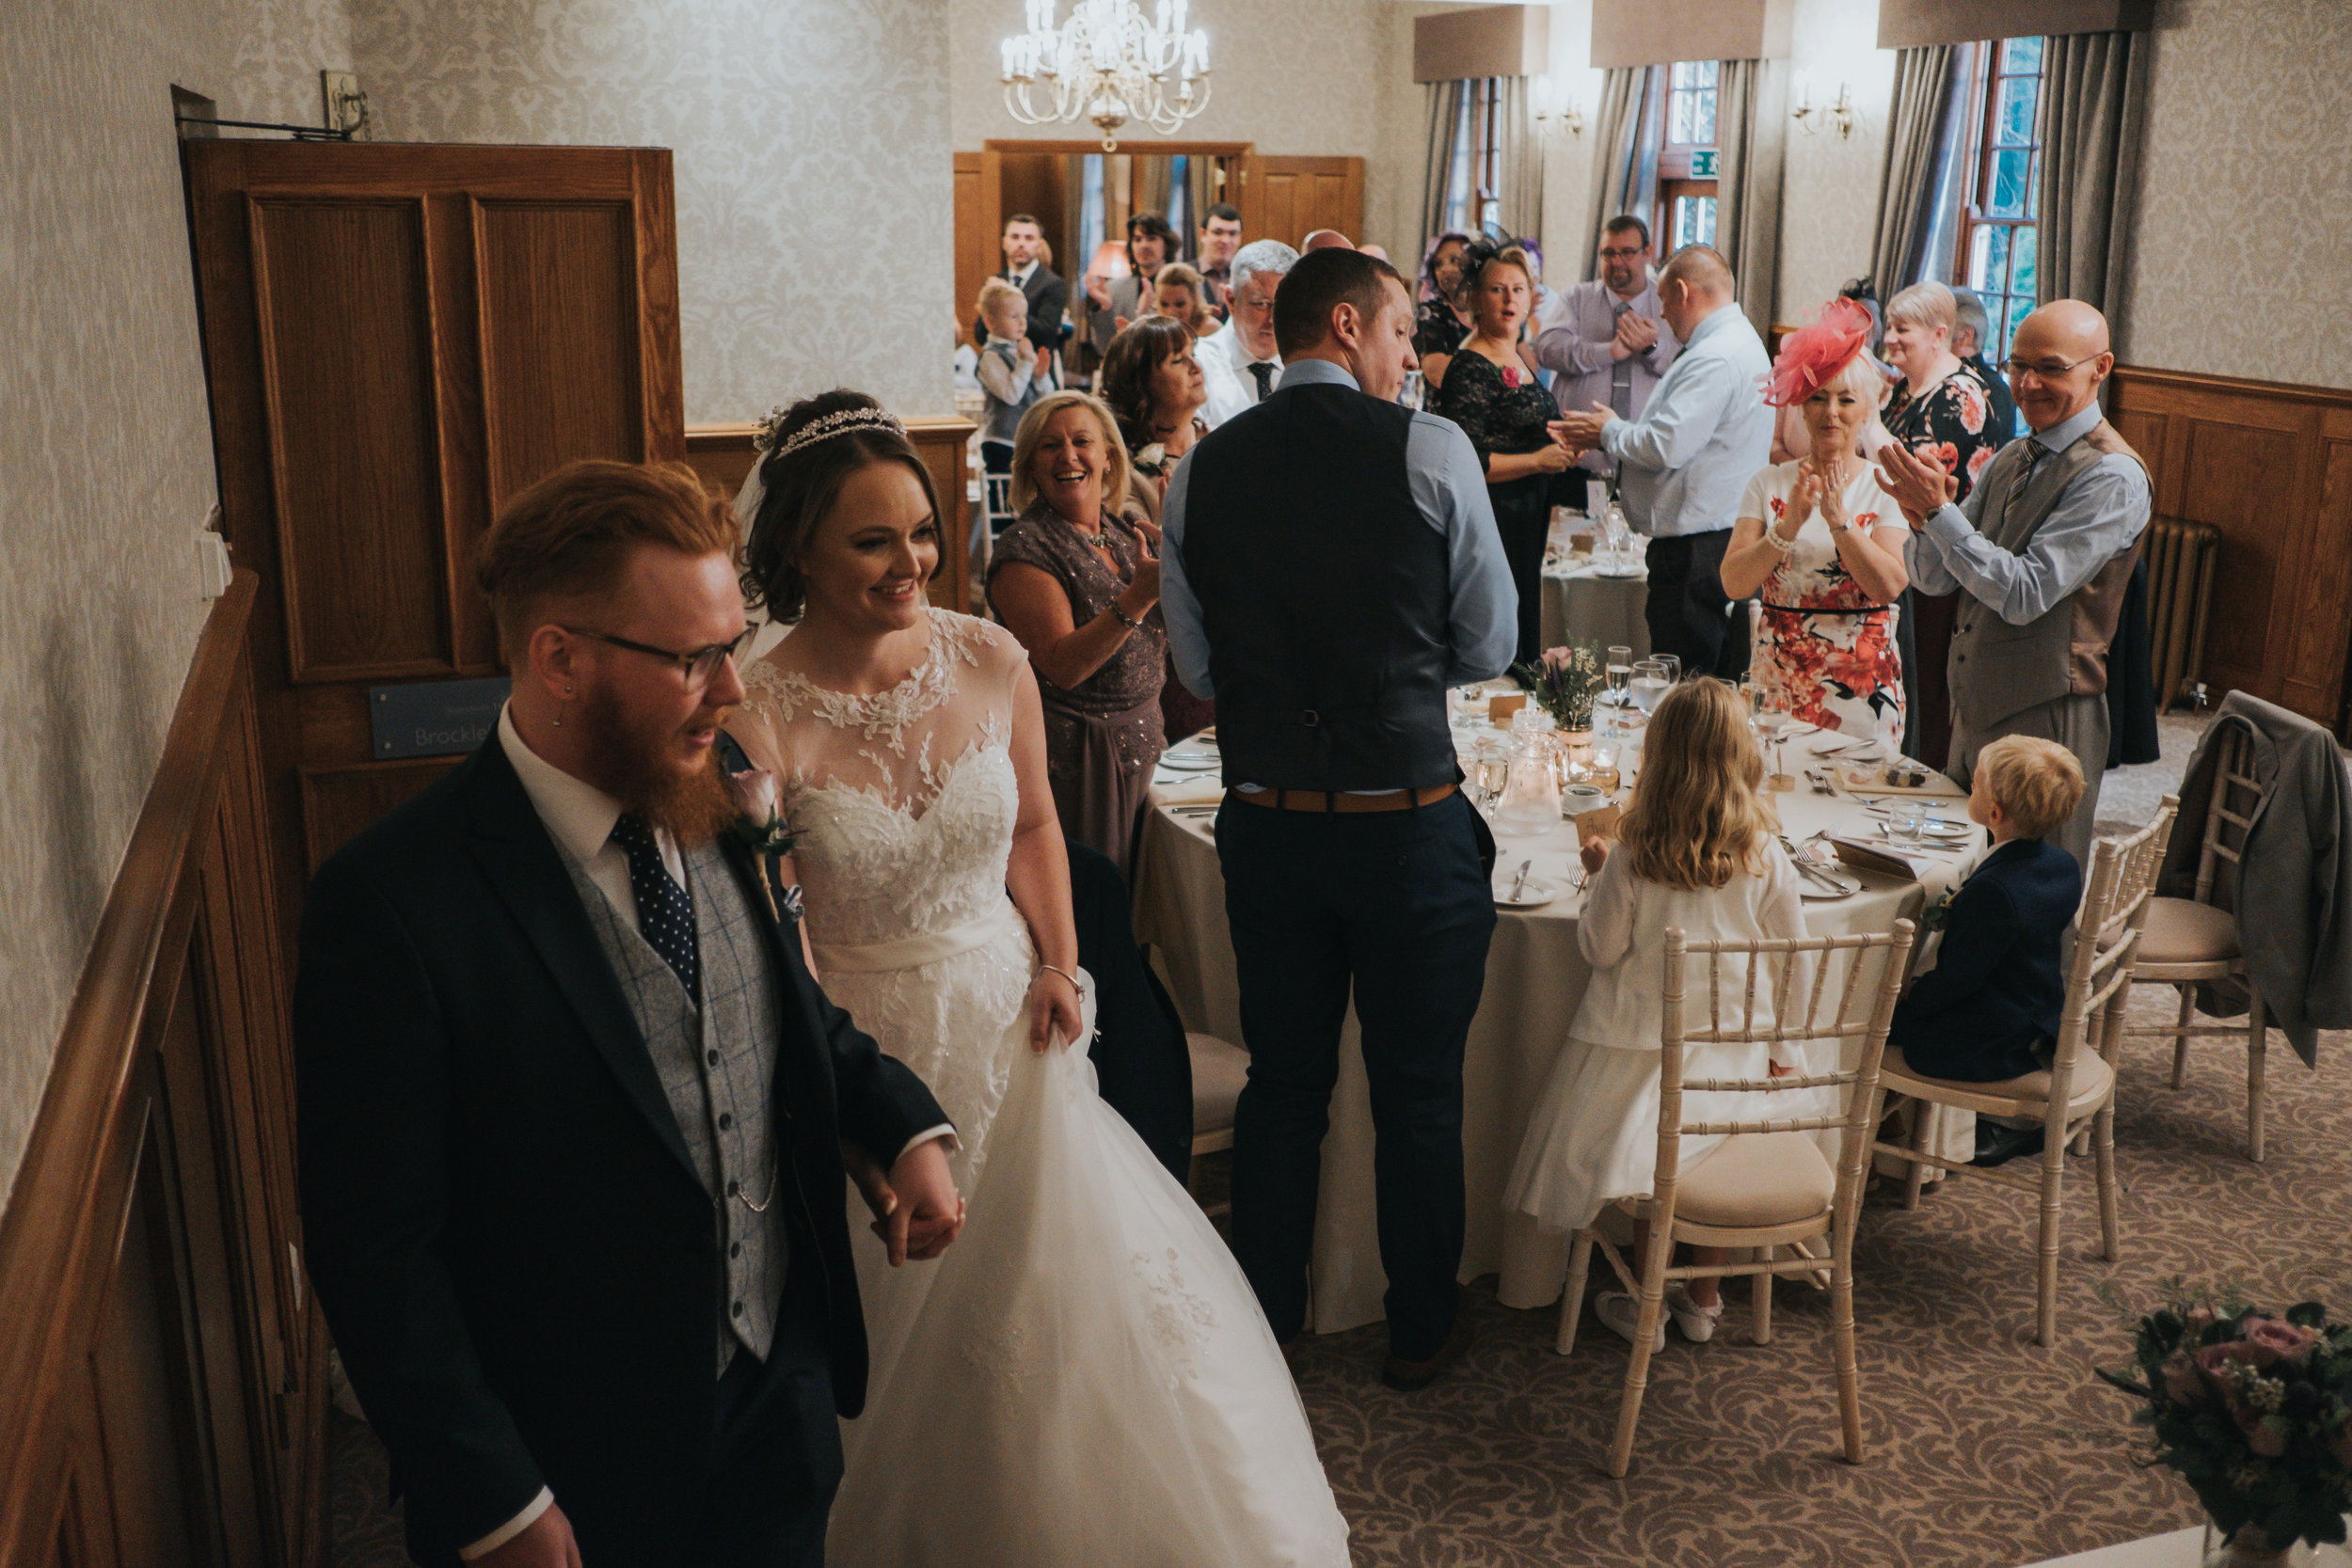 Vicky and Lee Wedding (394 of 590)-nunsmere hall wedding photographer in cheshire documentry wedding photography north west england.jpg